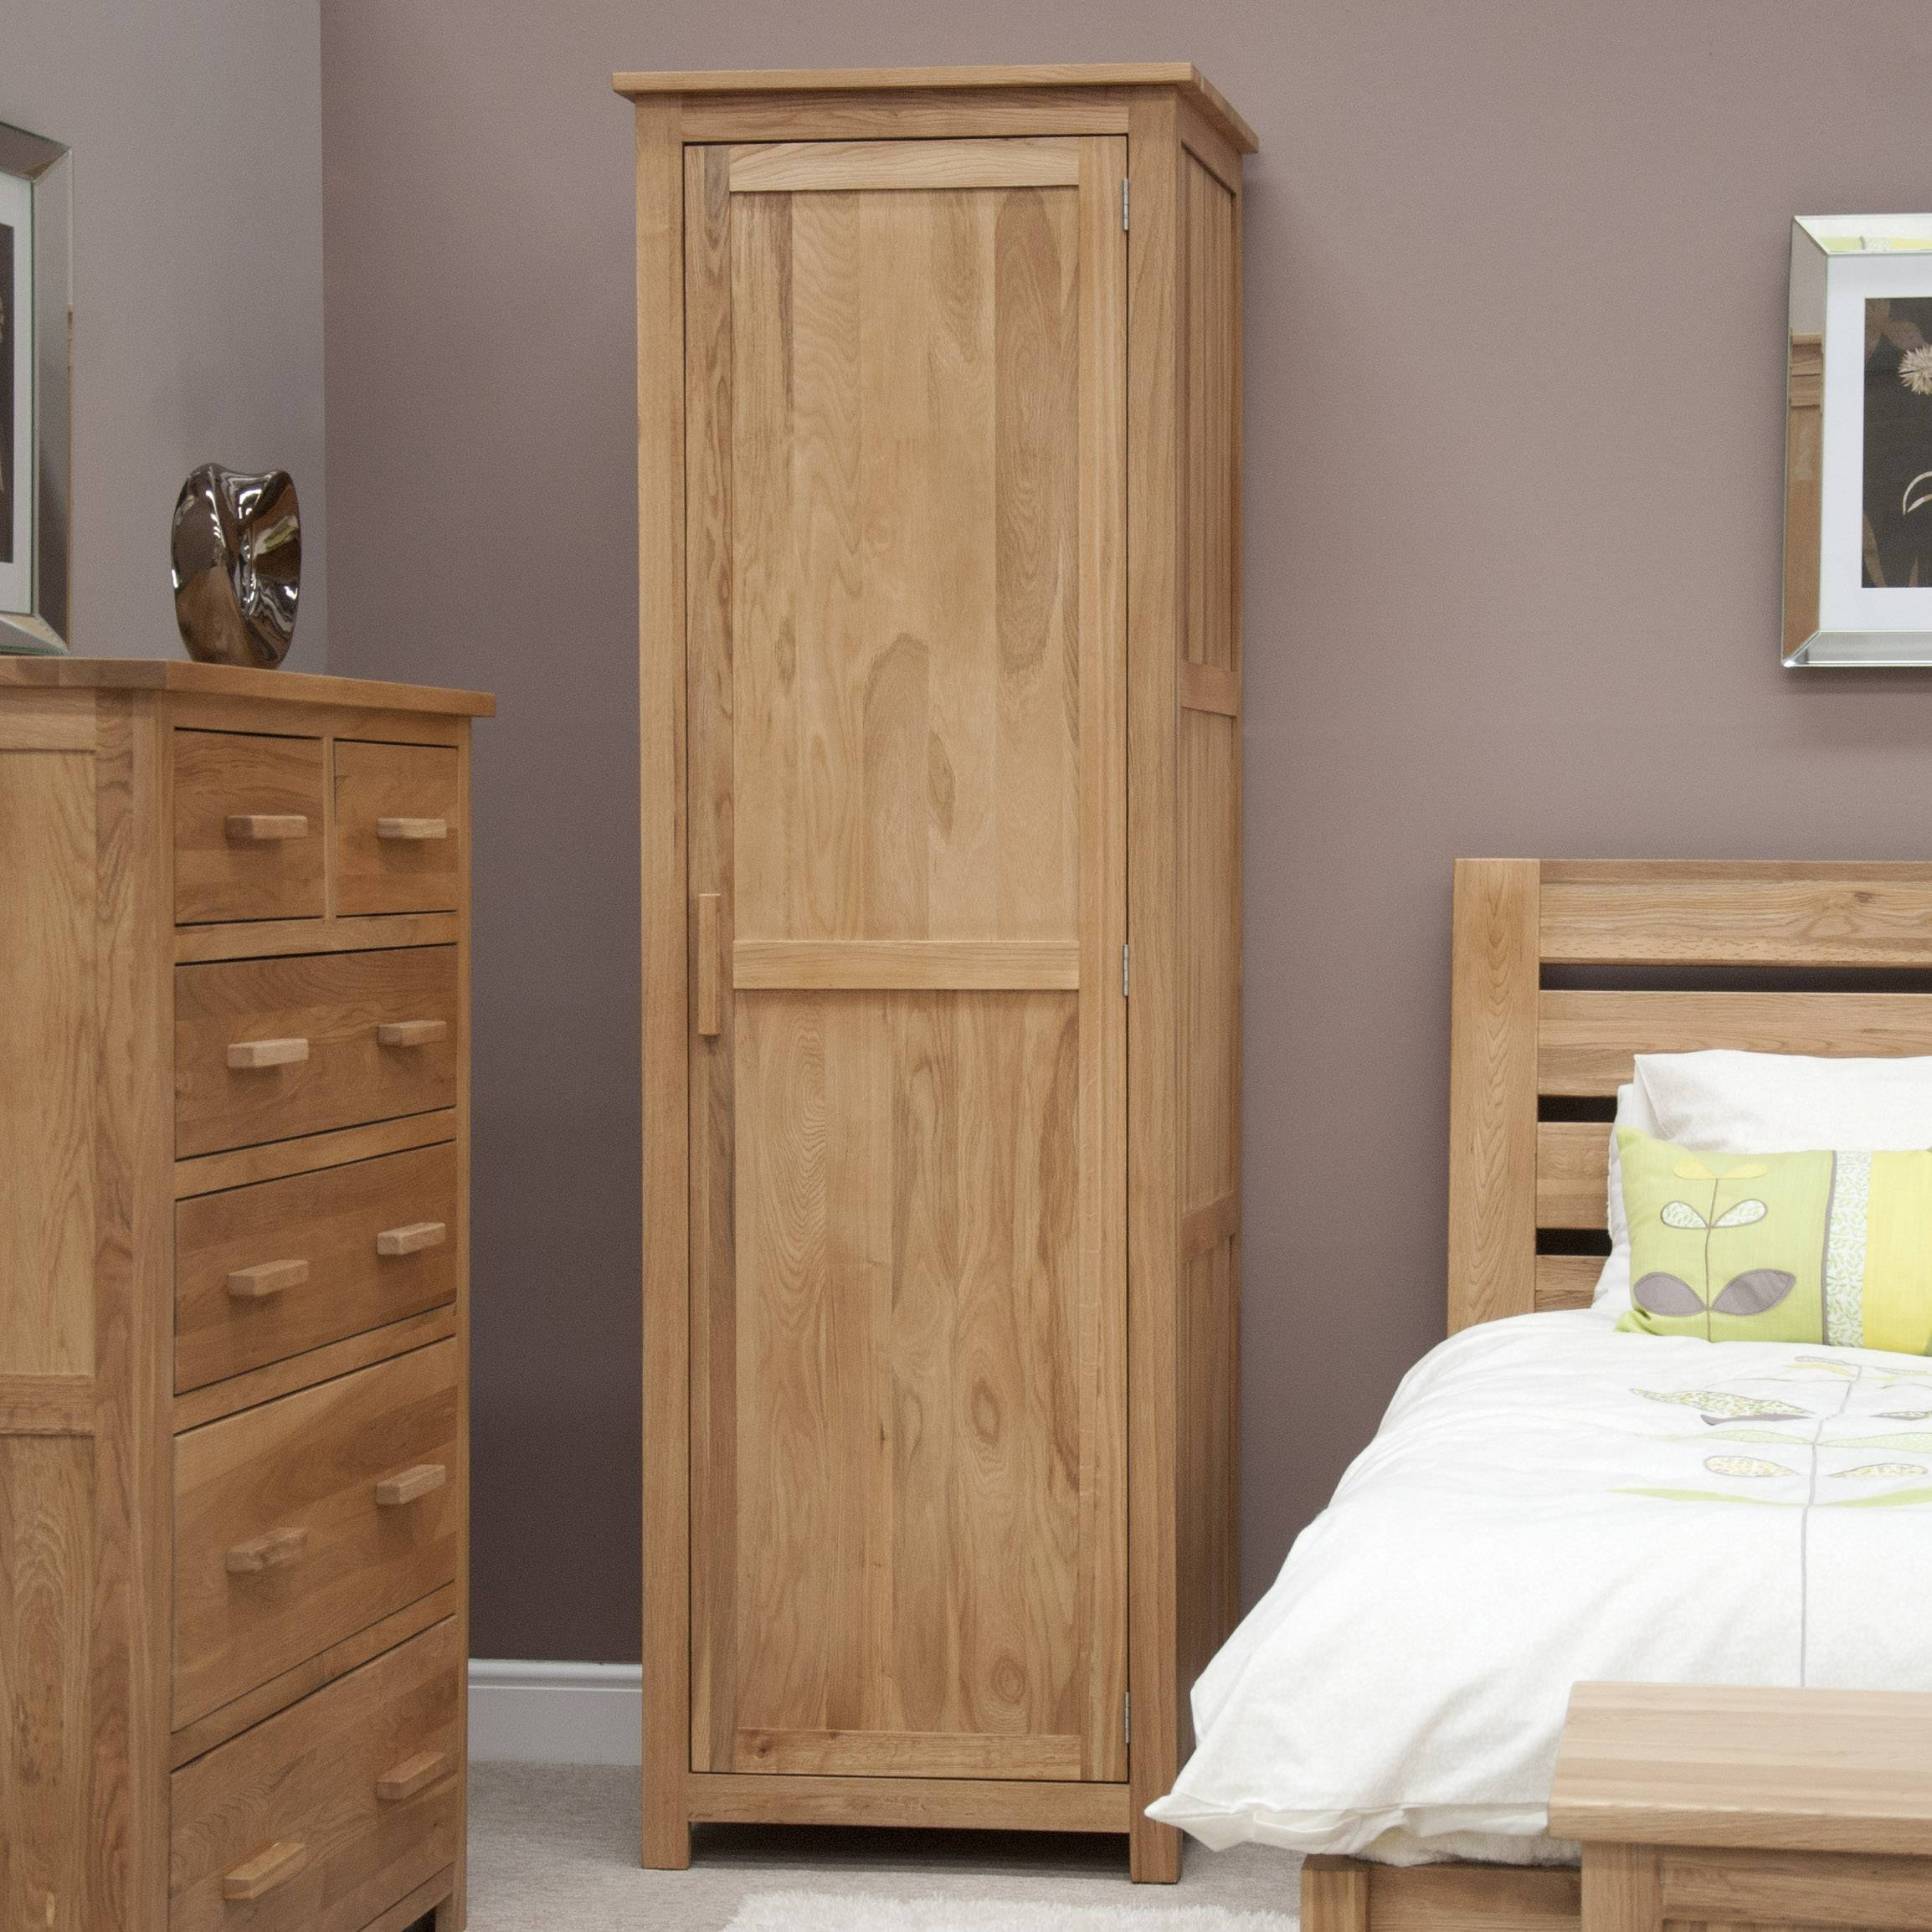 Fantastic Furniture | Pine And Oak | Furniture Workshoppe pertaining to Single Pine Wardrobes (Image 5 of 15)